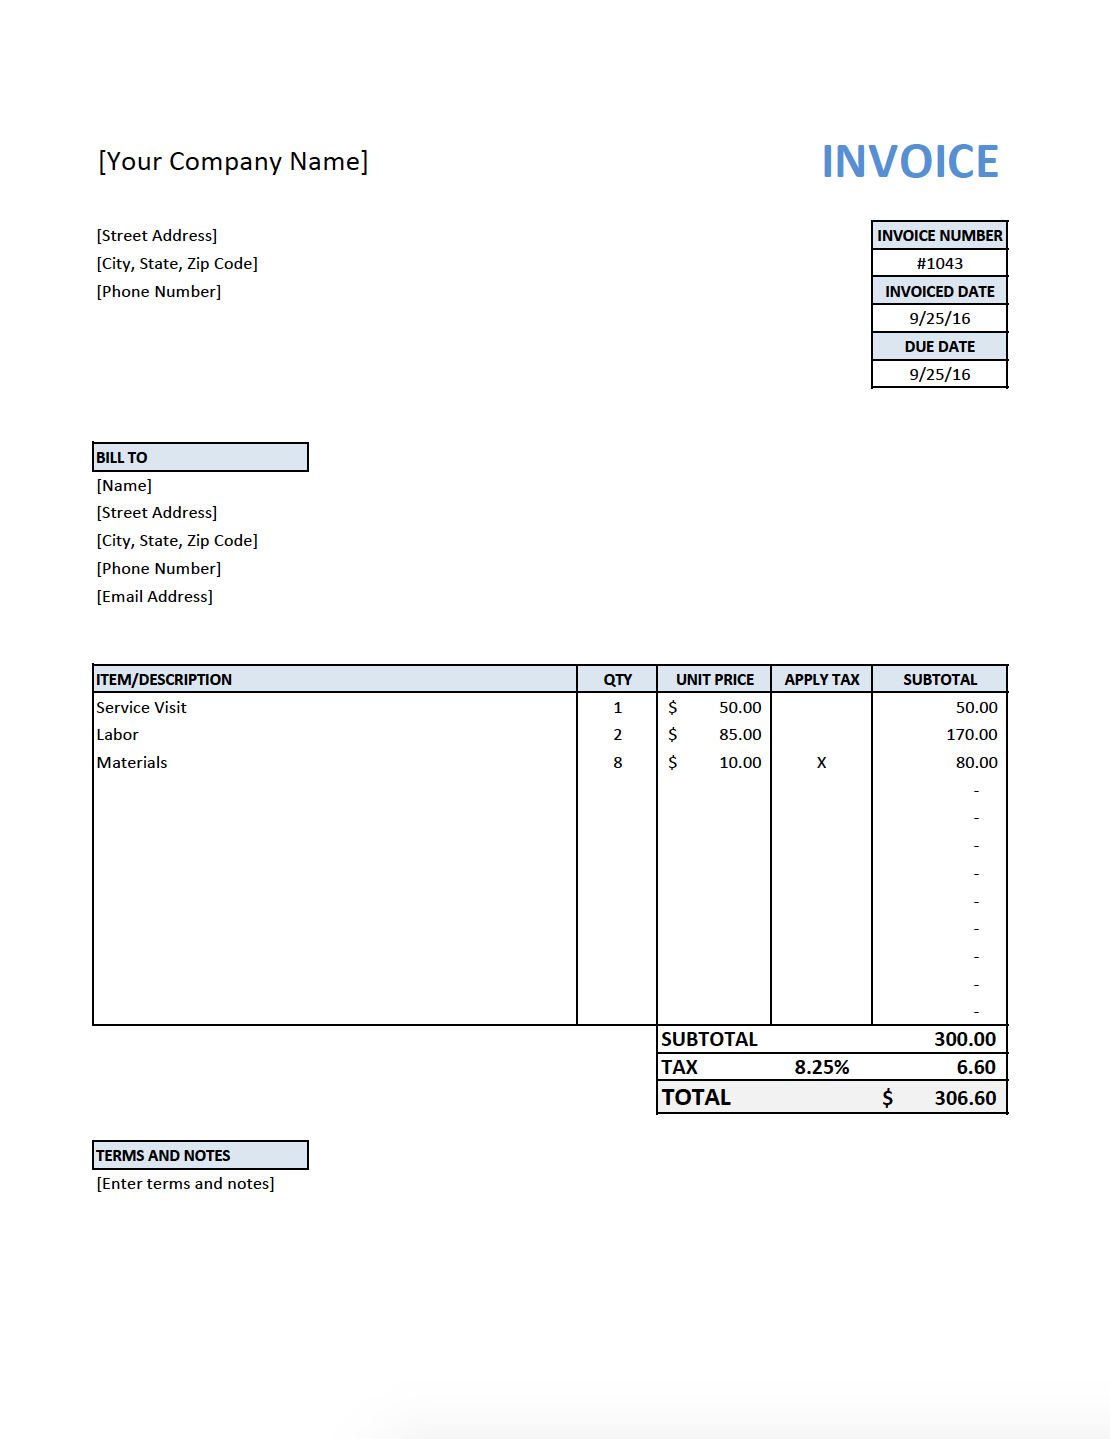 Free Invoice Template For Contractors Electrician Quickbooks Contractor Remodeling Renovating R Invoice Template Estimate Template Invoice Template Word